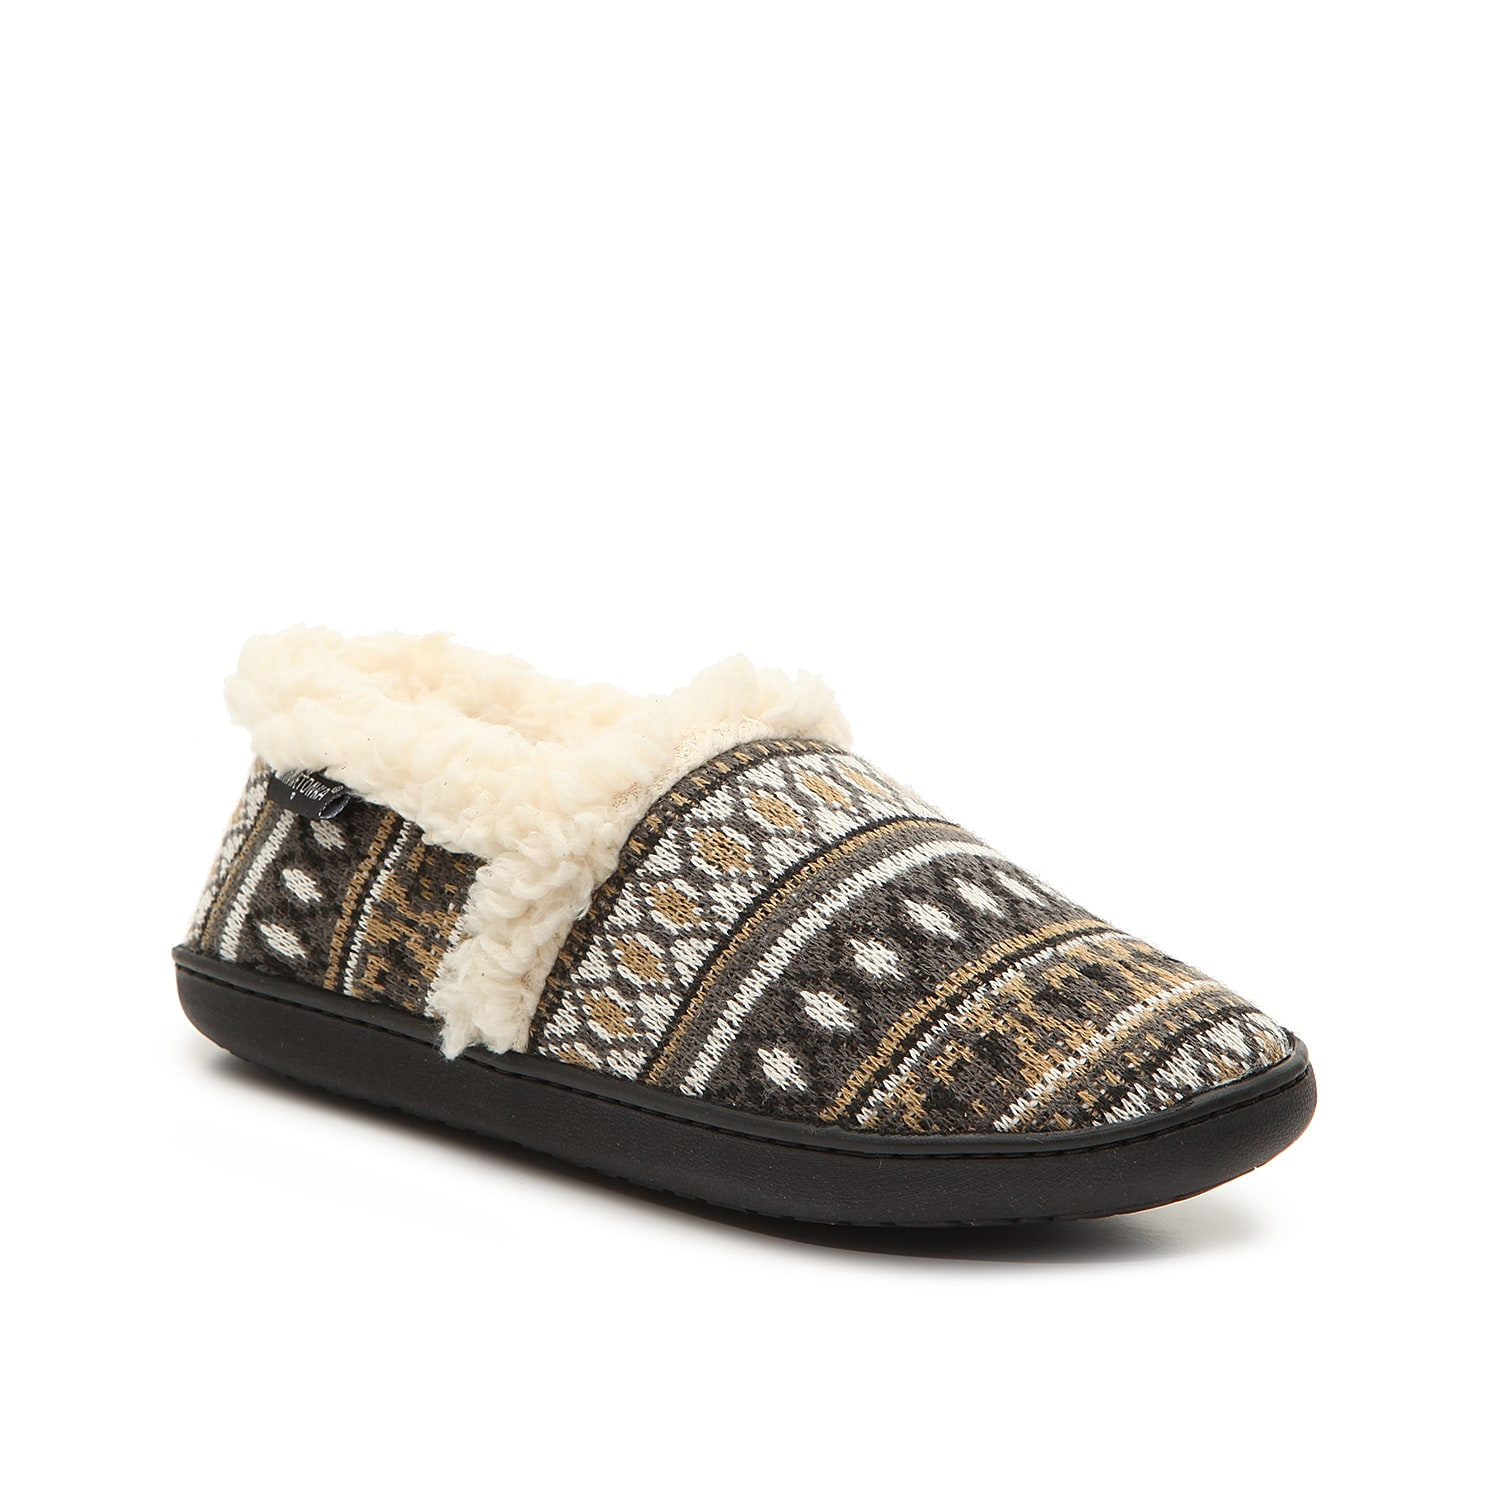 Brace yourself for chily days ahead in the Dina slippers from Minnetonka. These slip-ons come with a soft faux fur lining to keep toes toasty all day and night.